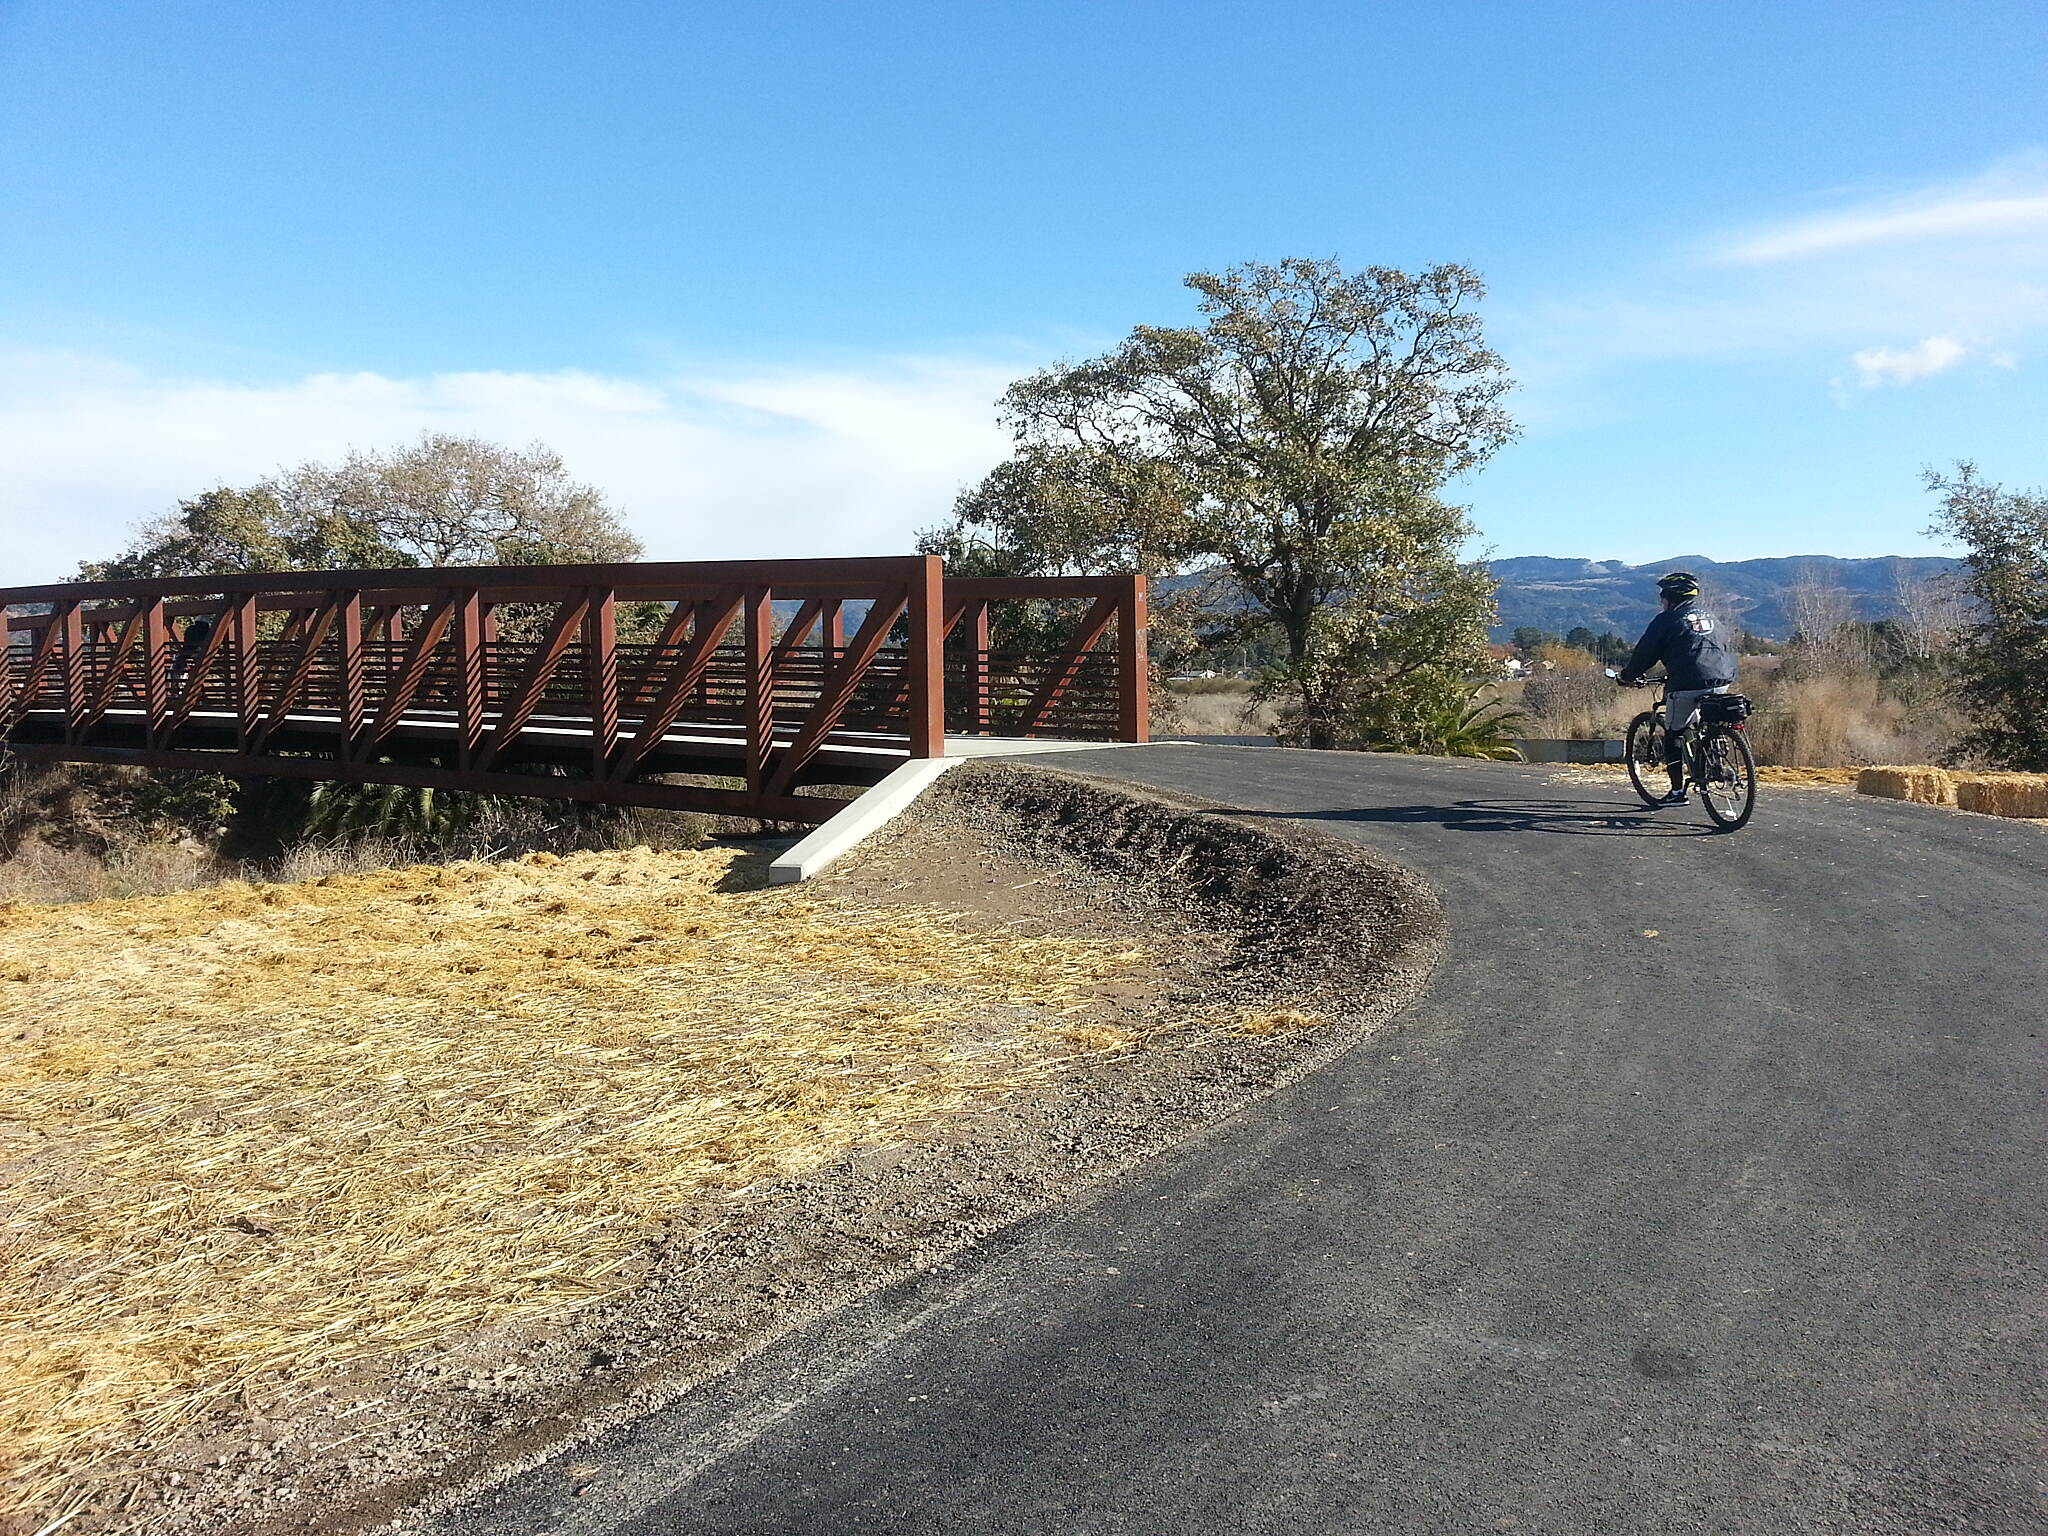 Napa Valley Vine Trail Bridge near Hartle Lane Bridge at south end of new addition to Vine Trail